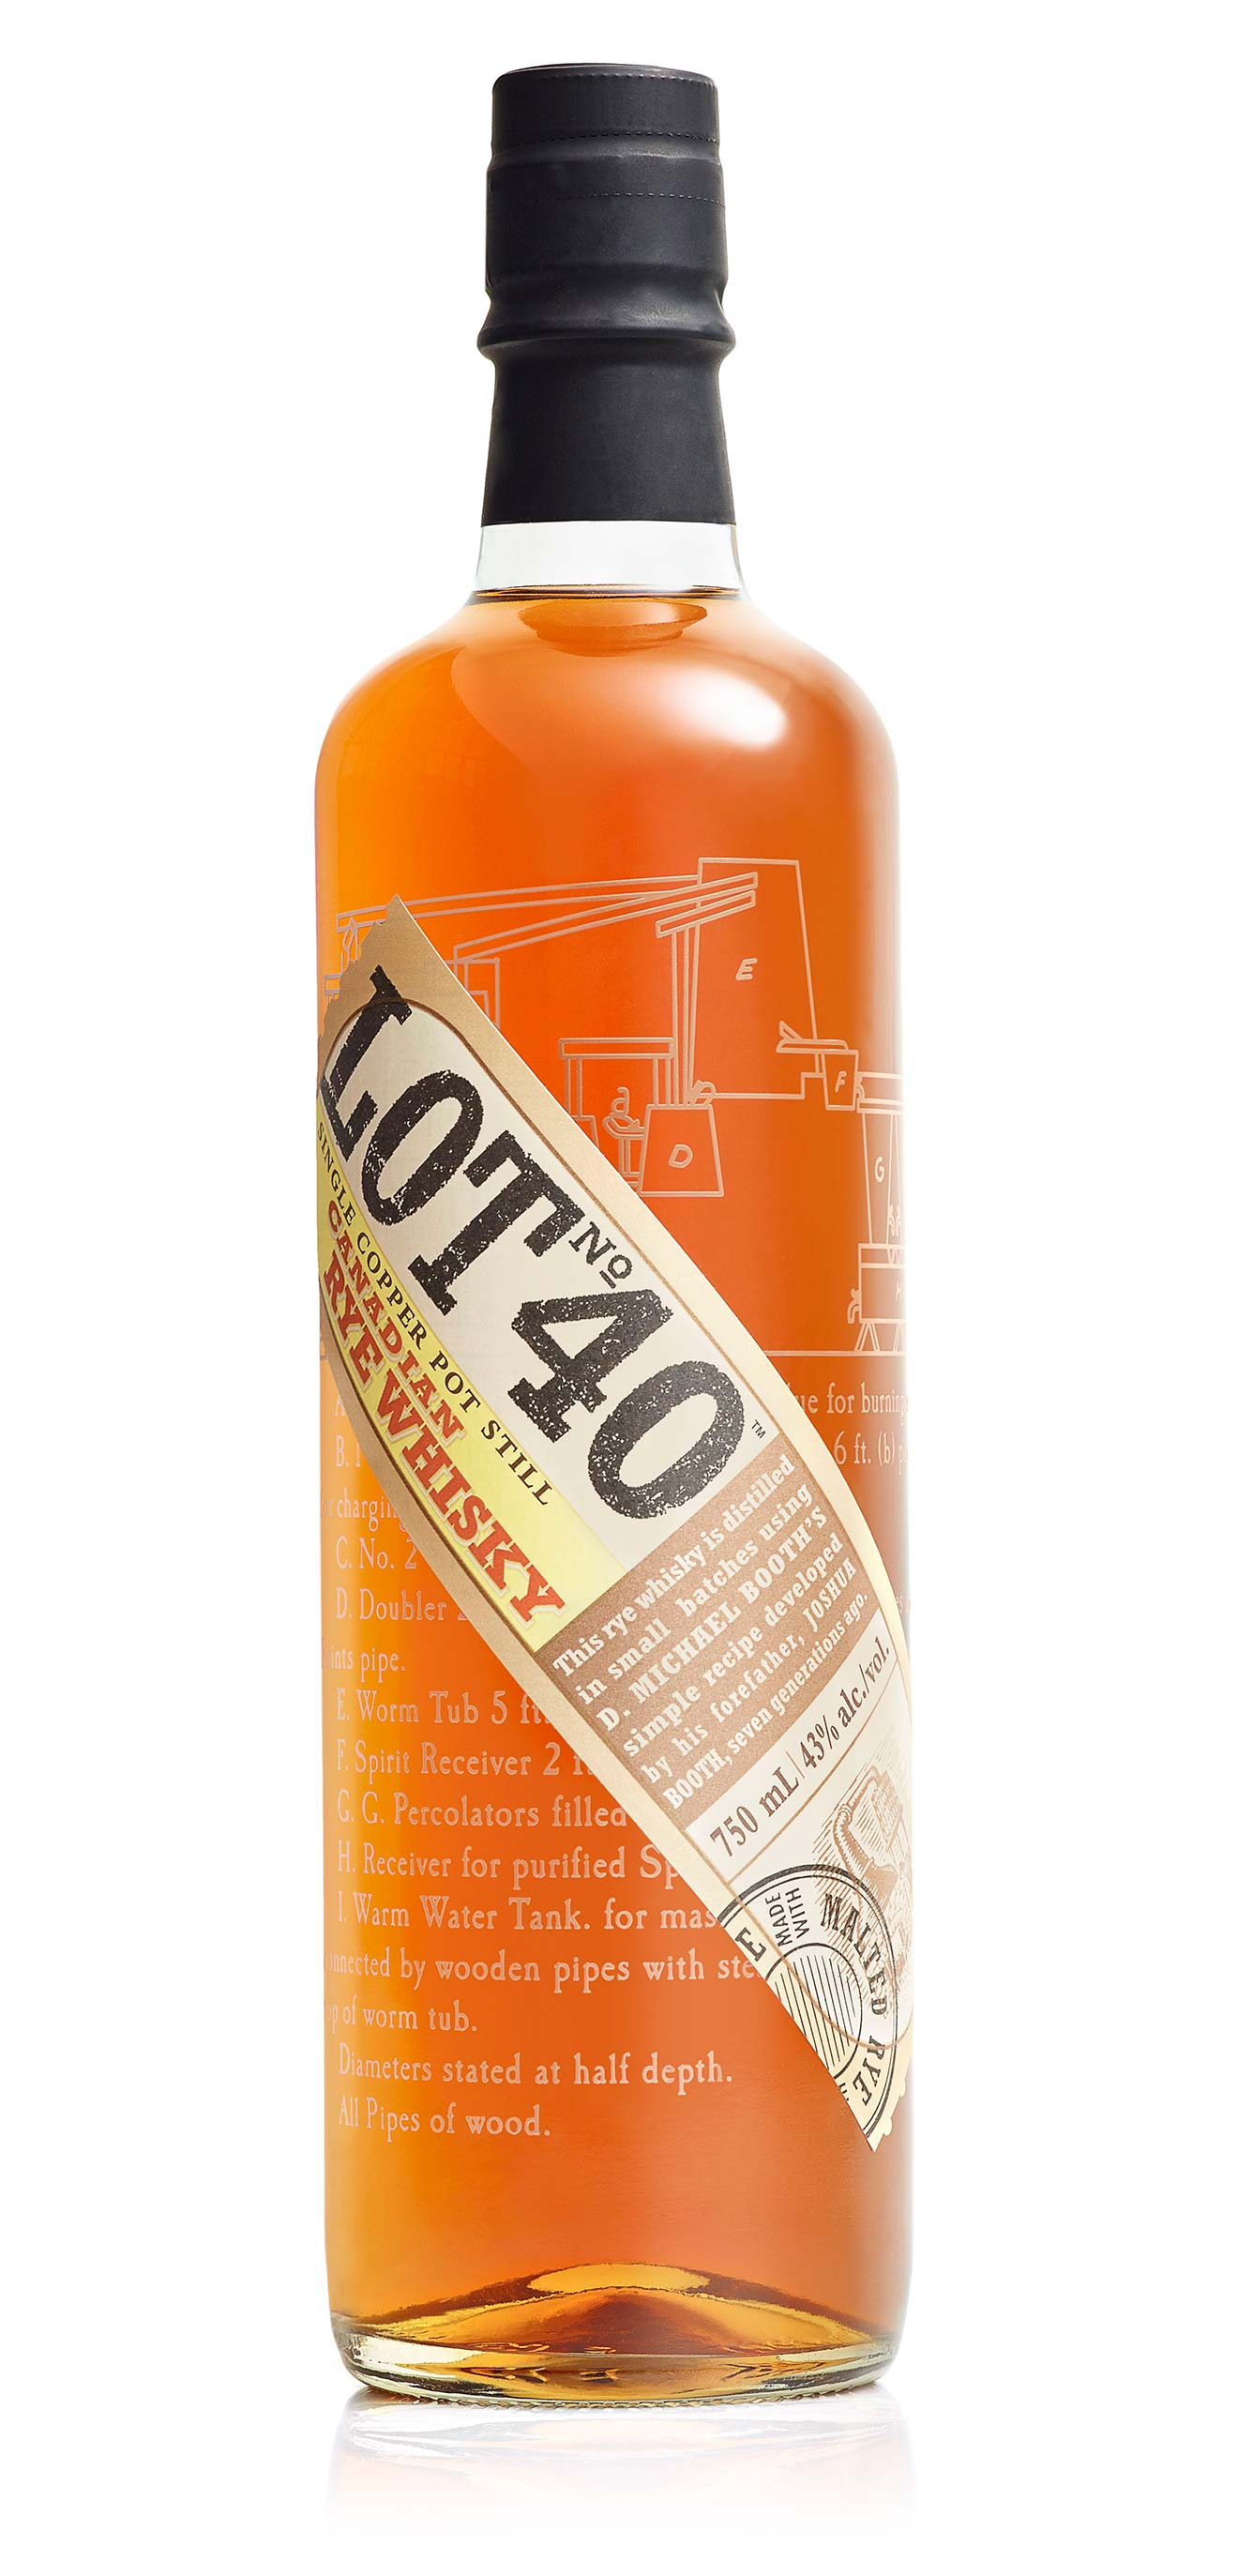 Lot No. 40 - Canadian Whisky of the Year, featured brands